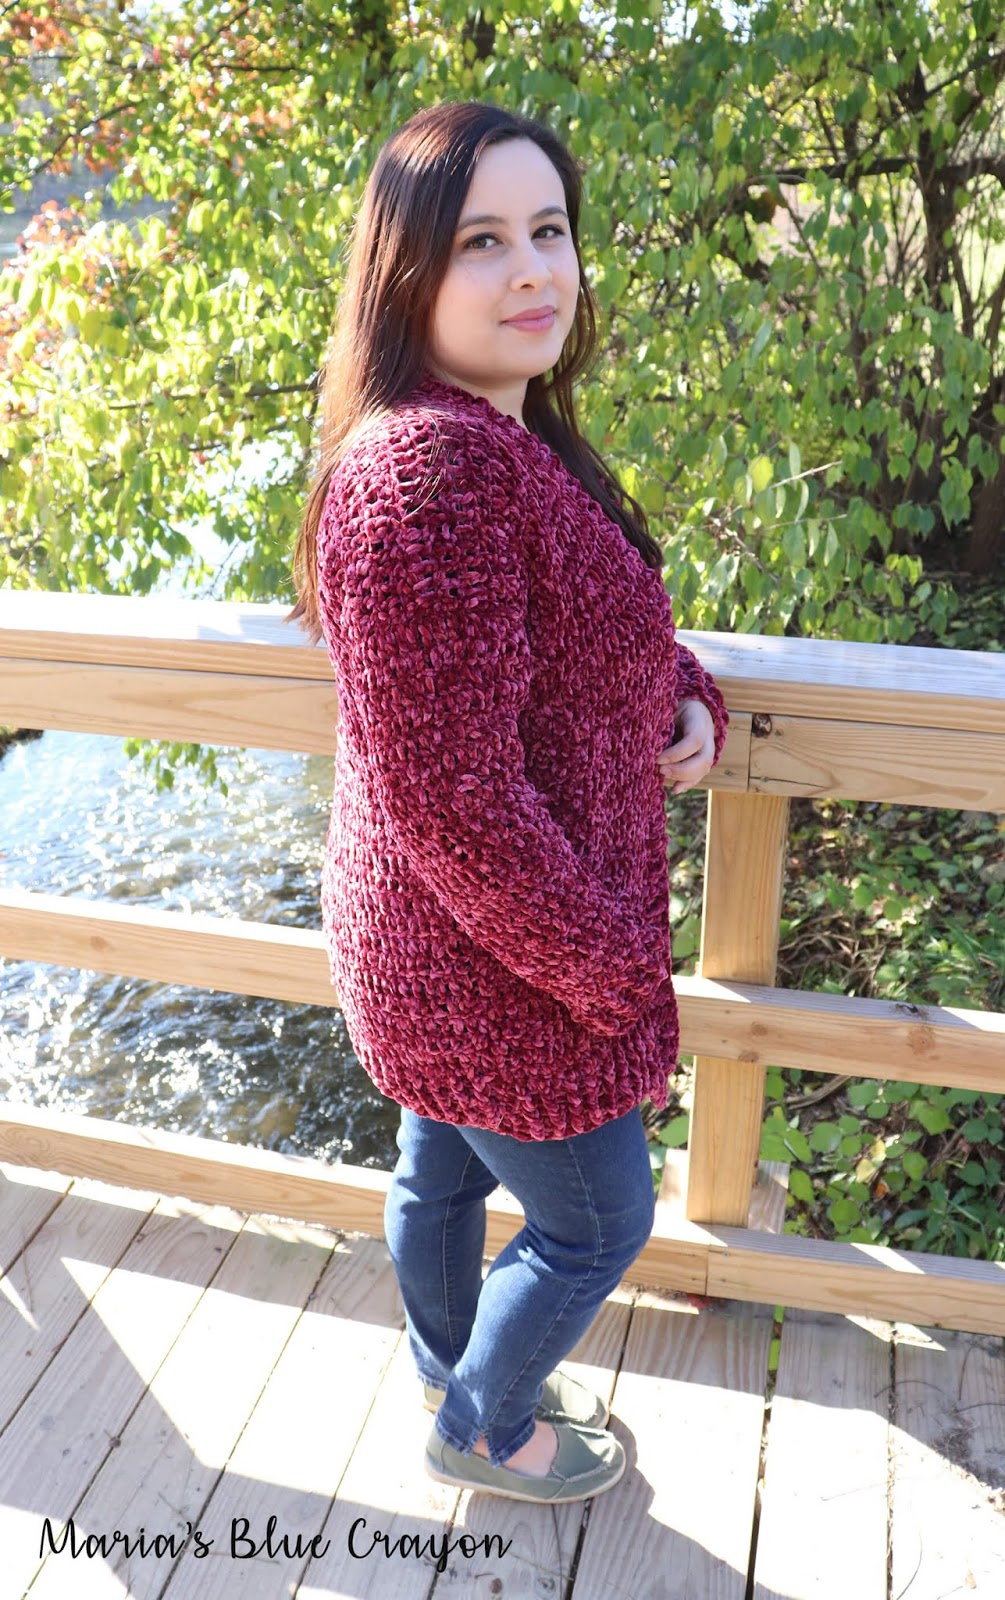 """0dcf7efc3 Something different I did this time around with pattern sizing for a  cardigan is adding heights to the sizes. I m 4 11"""" so I have always  calculated the ..."""